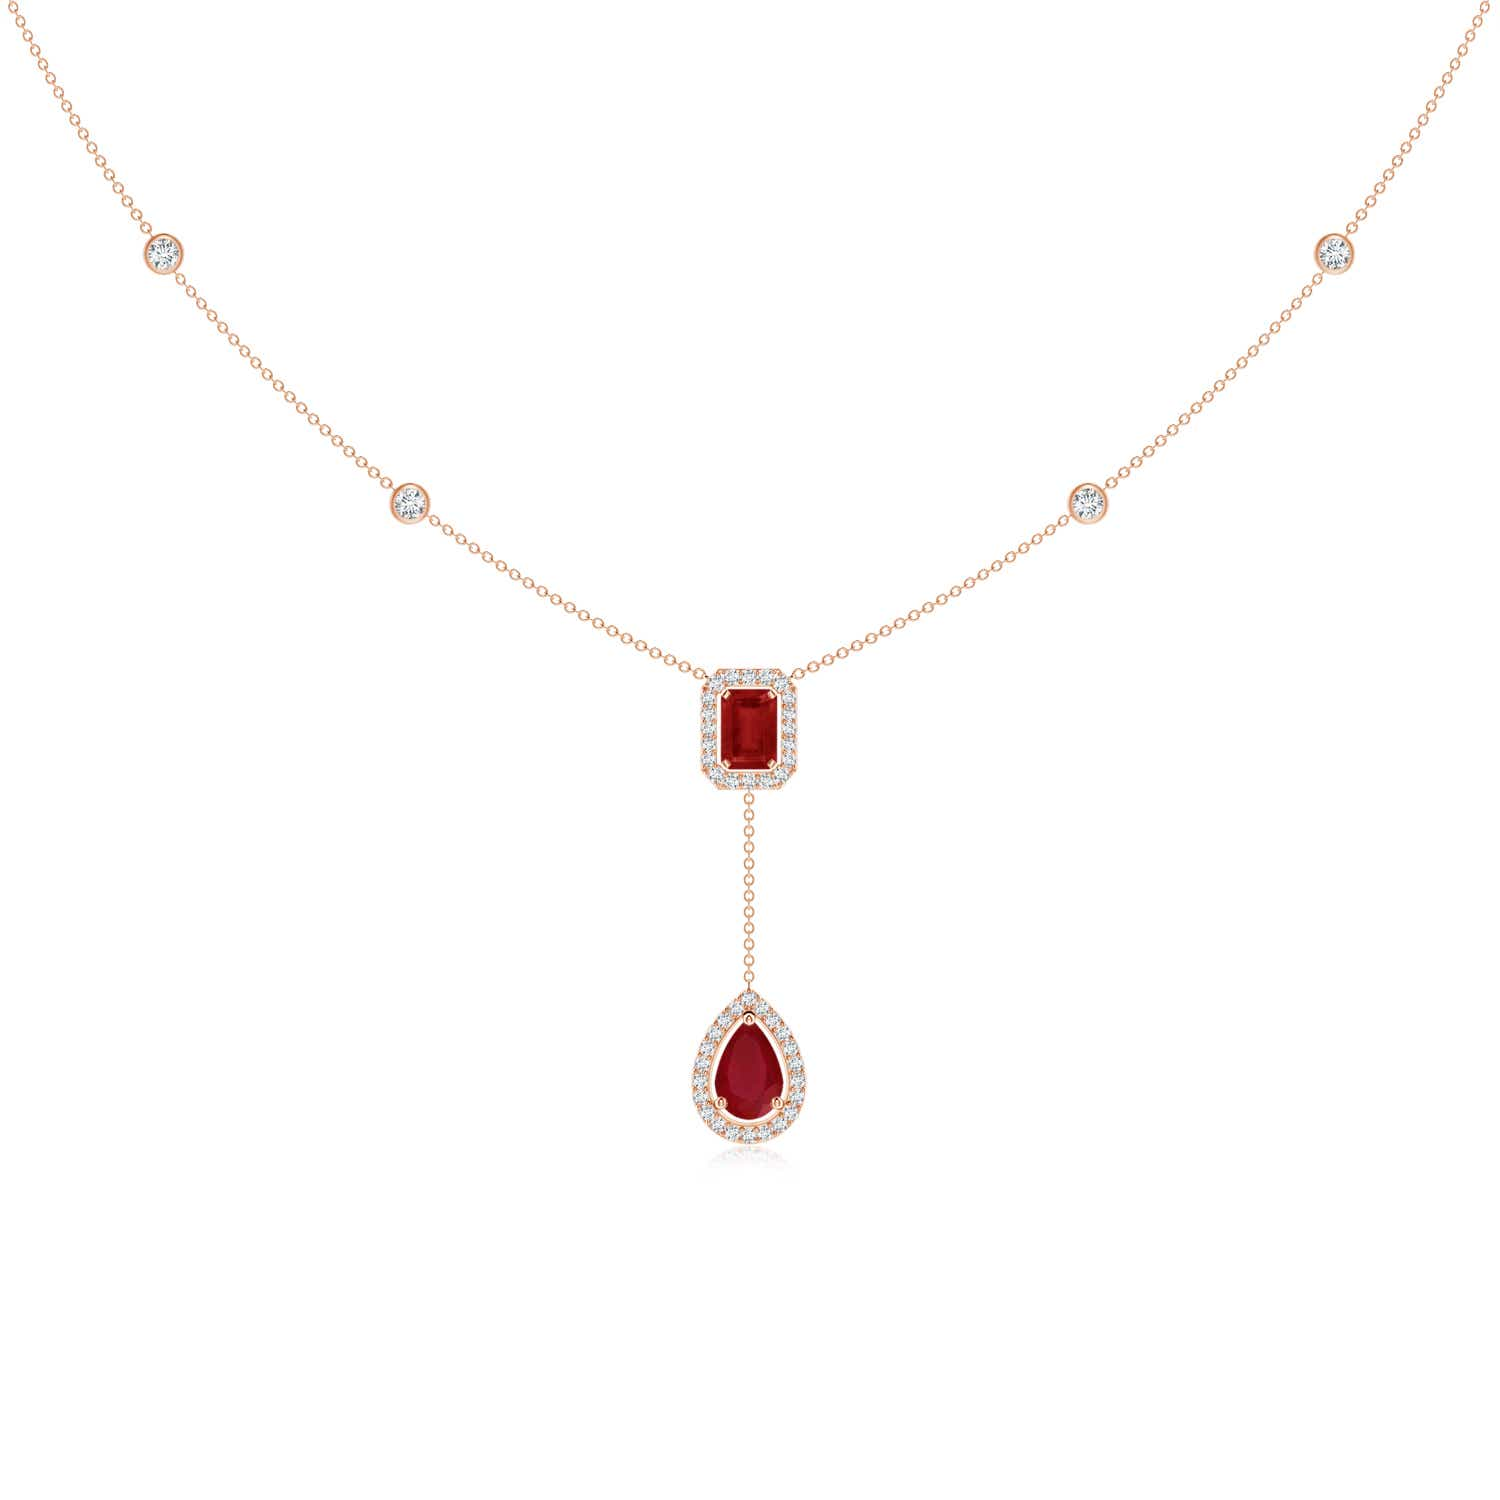 Emerald-Cut & Pear-Shaped Ruby Tie Necklace with Diamond